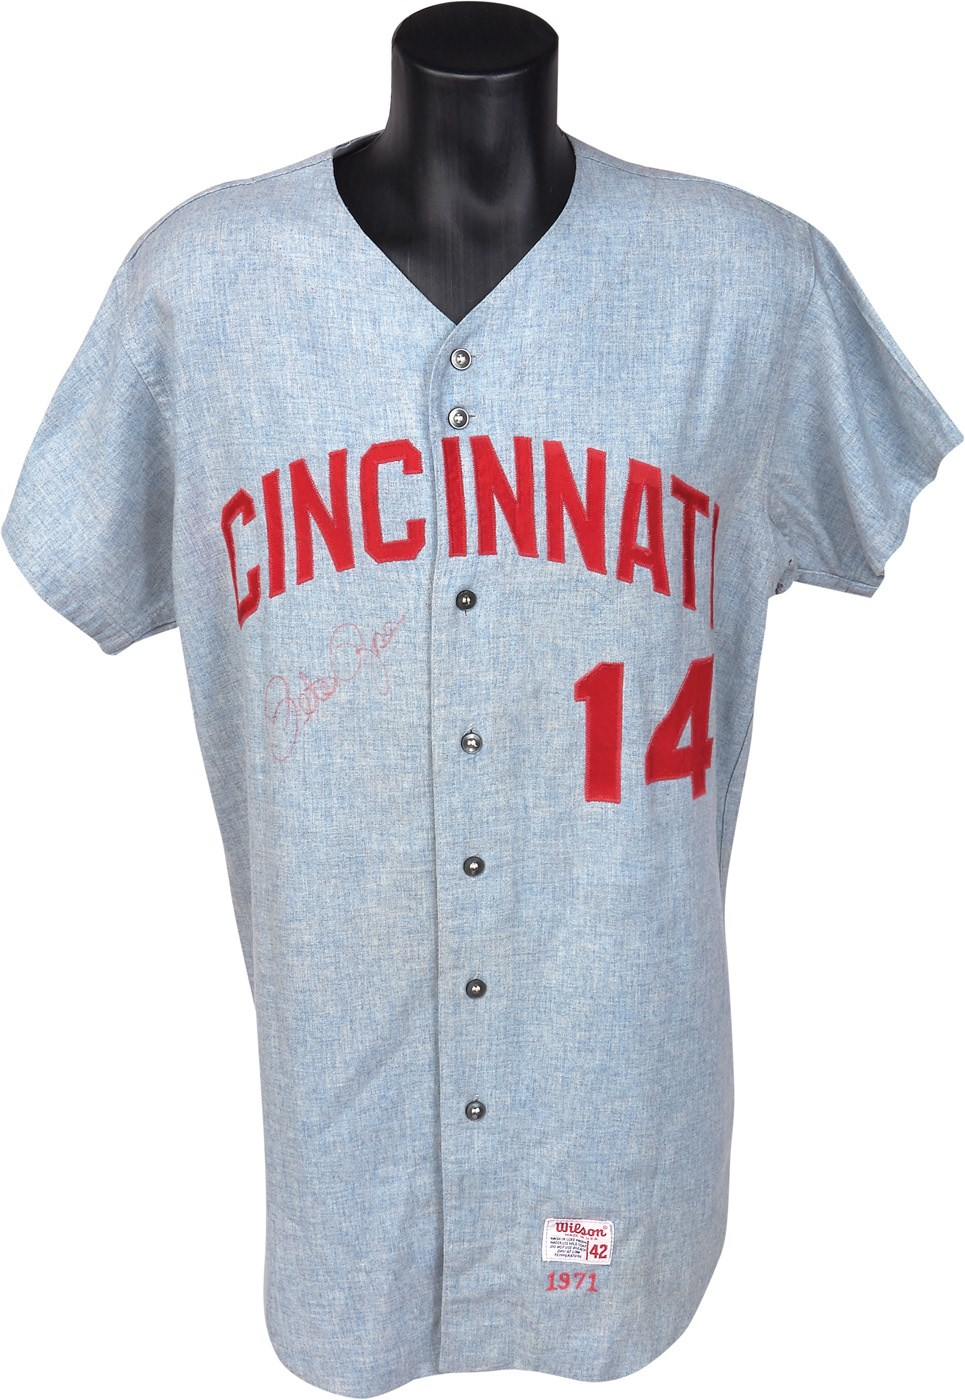 1971 Pete Rose Cincinnati Reds Game Worn Jersey - Possibly Worn In 1970 World Series (MEARS 9.5)